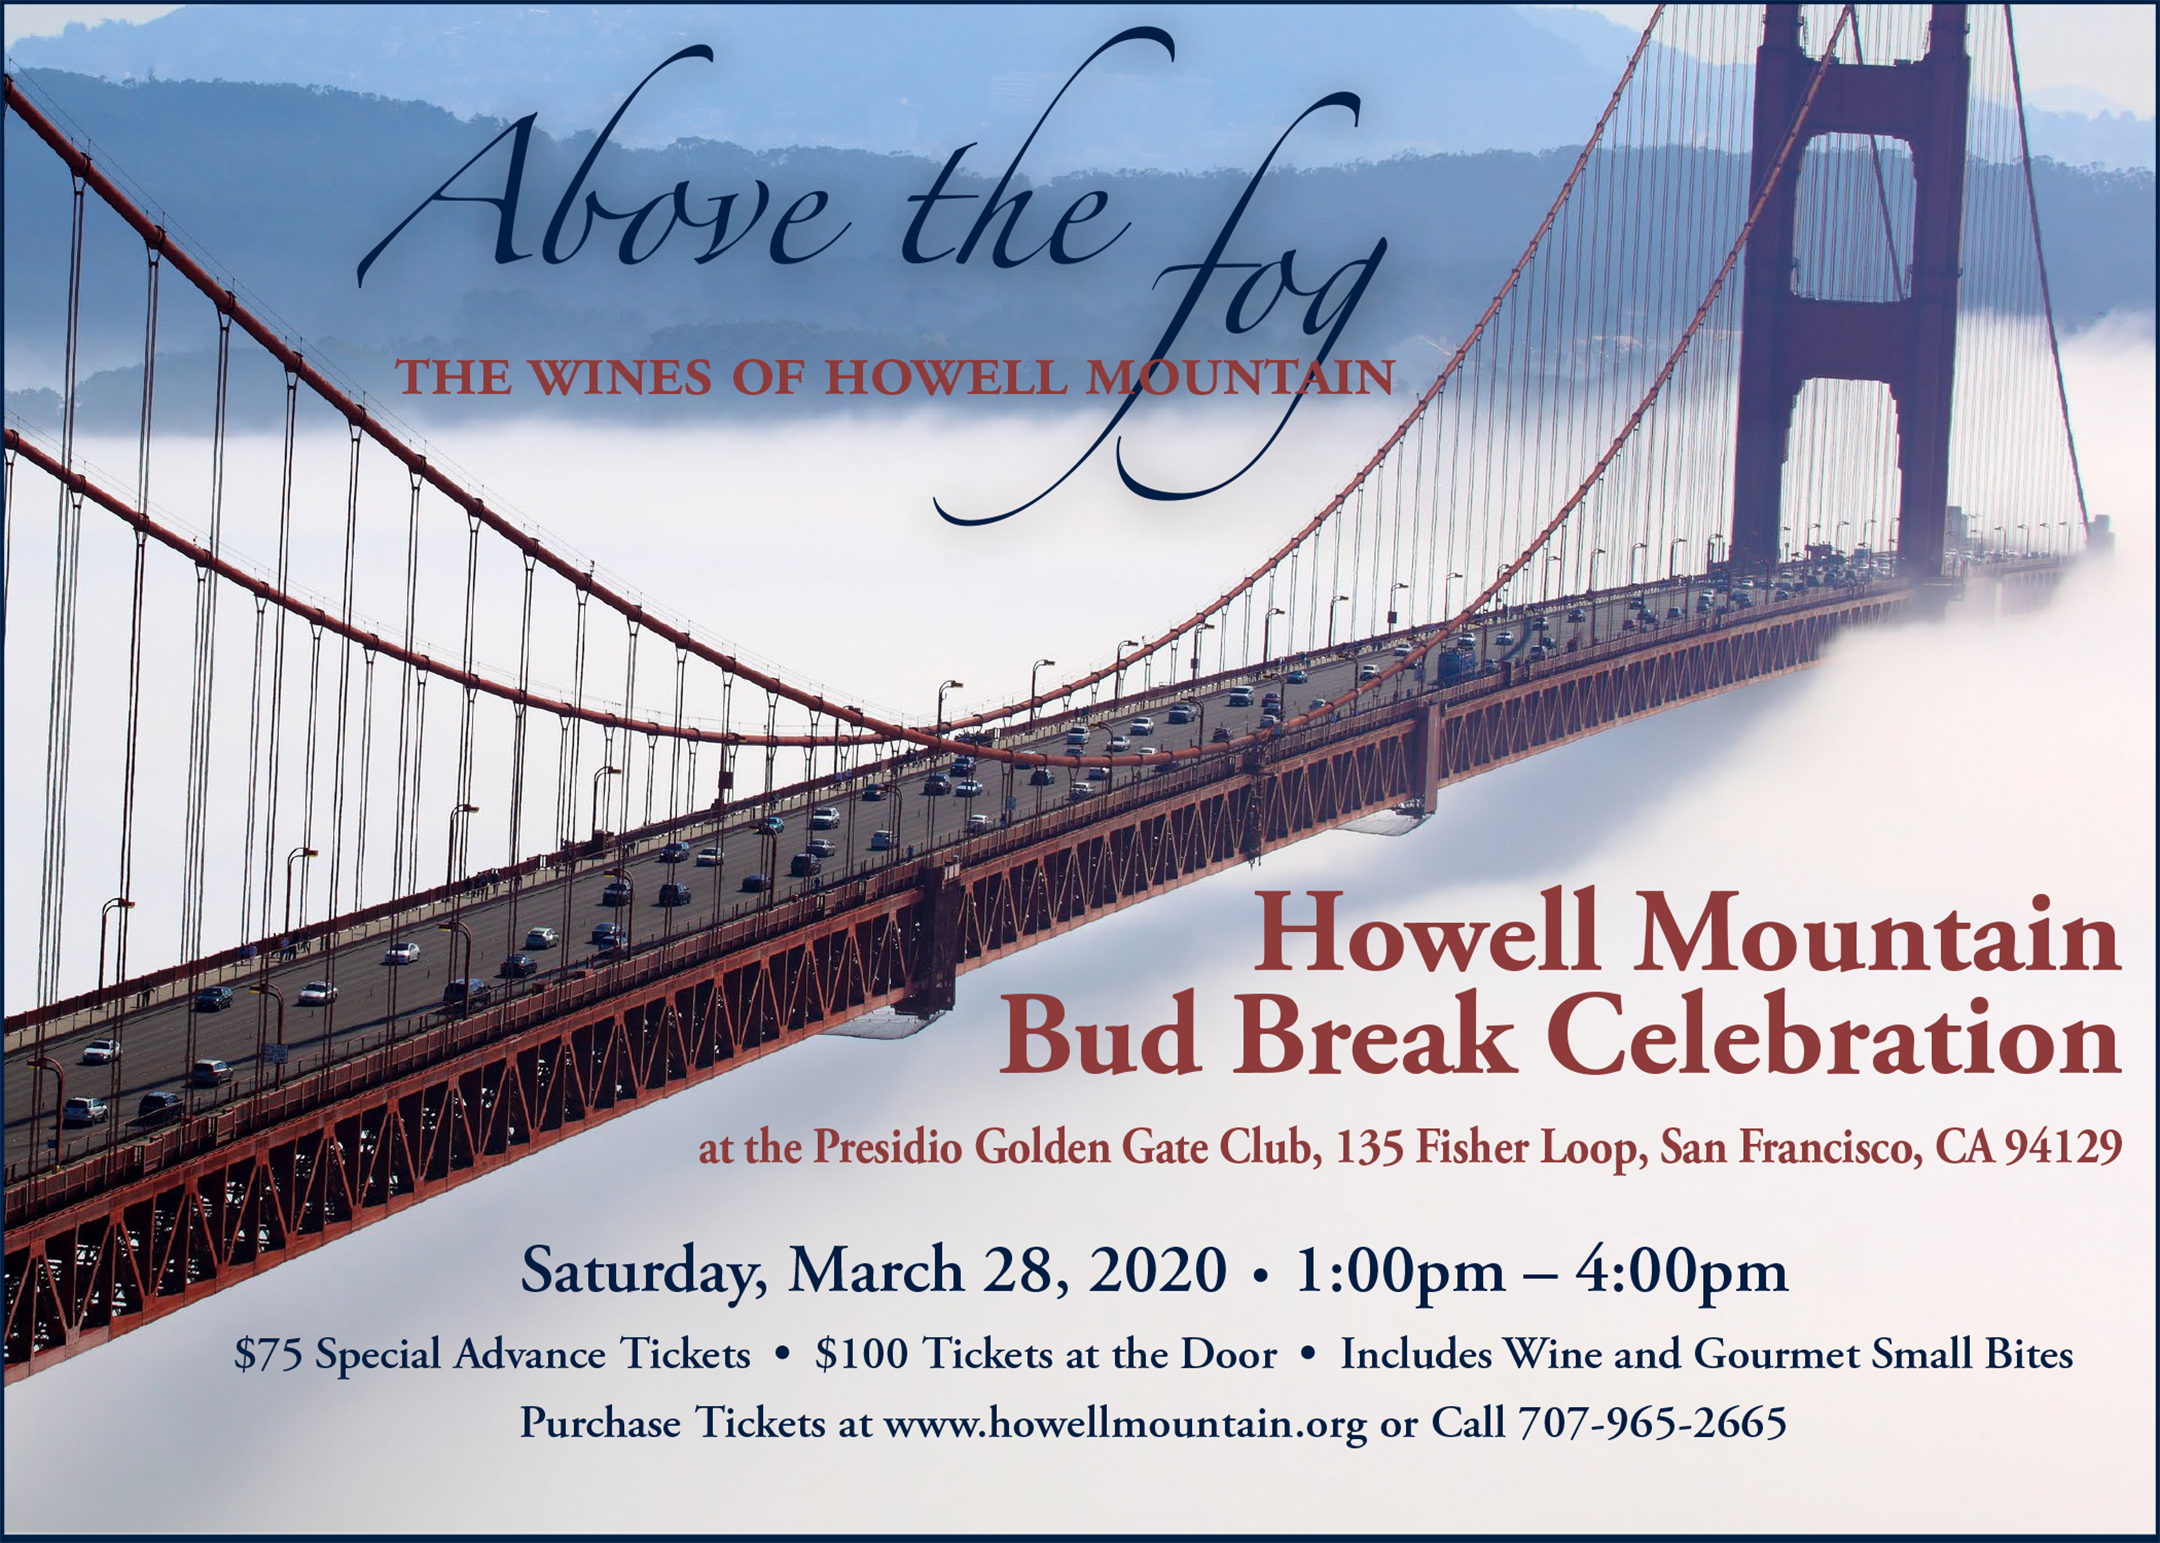 Howell Mountain Bud Break Celebration